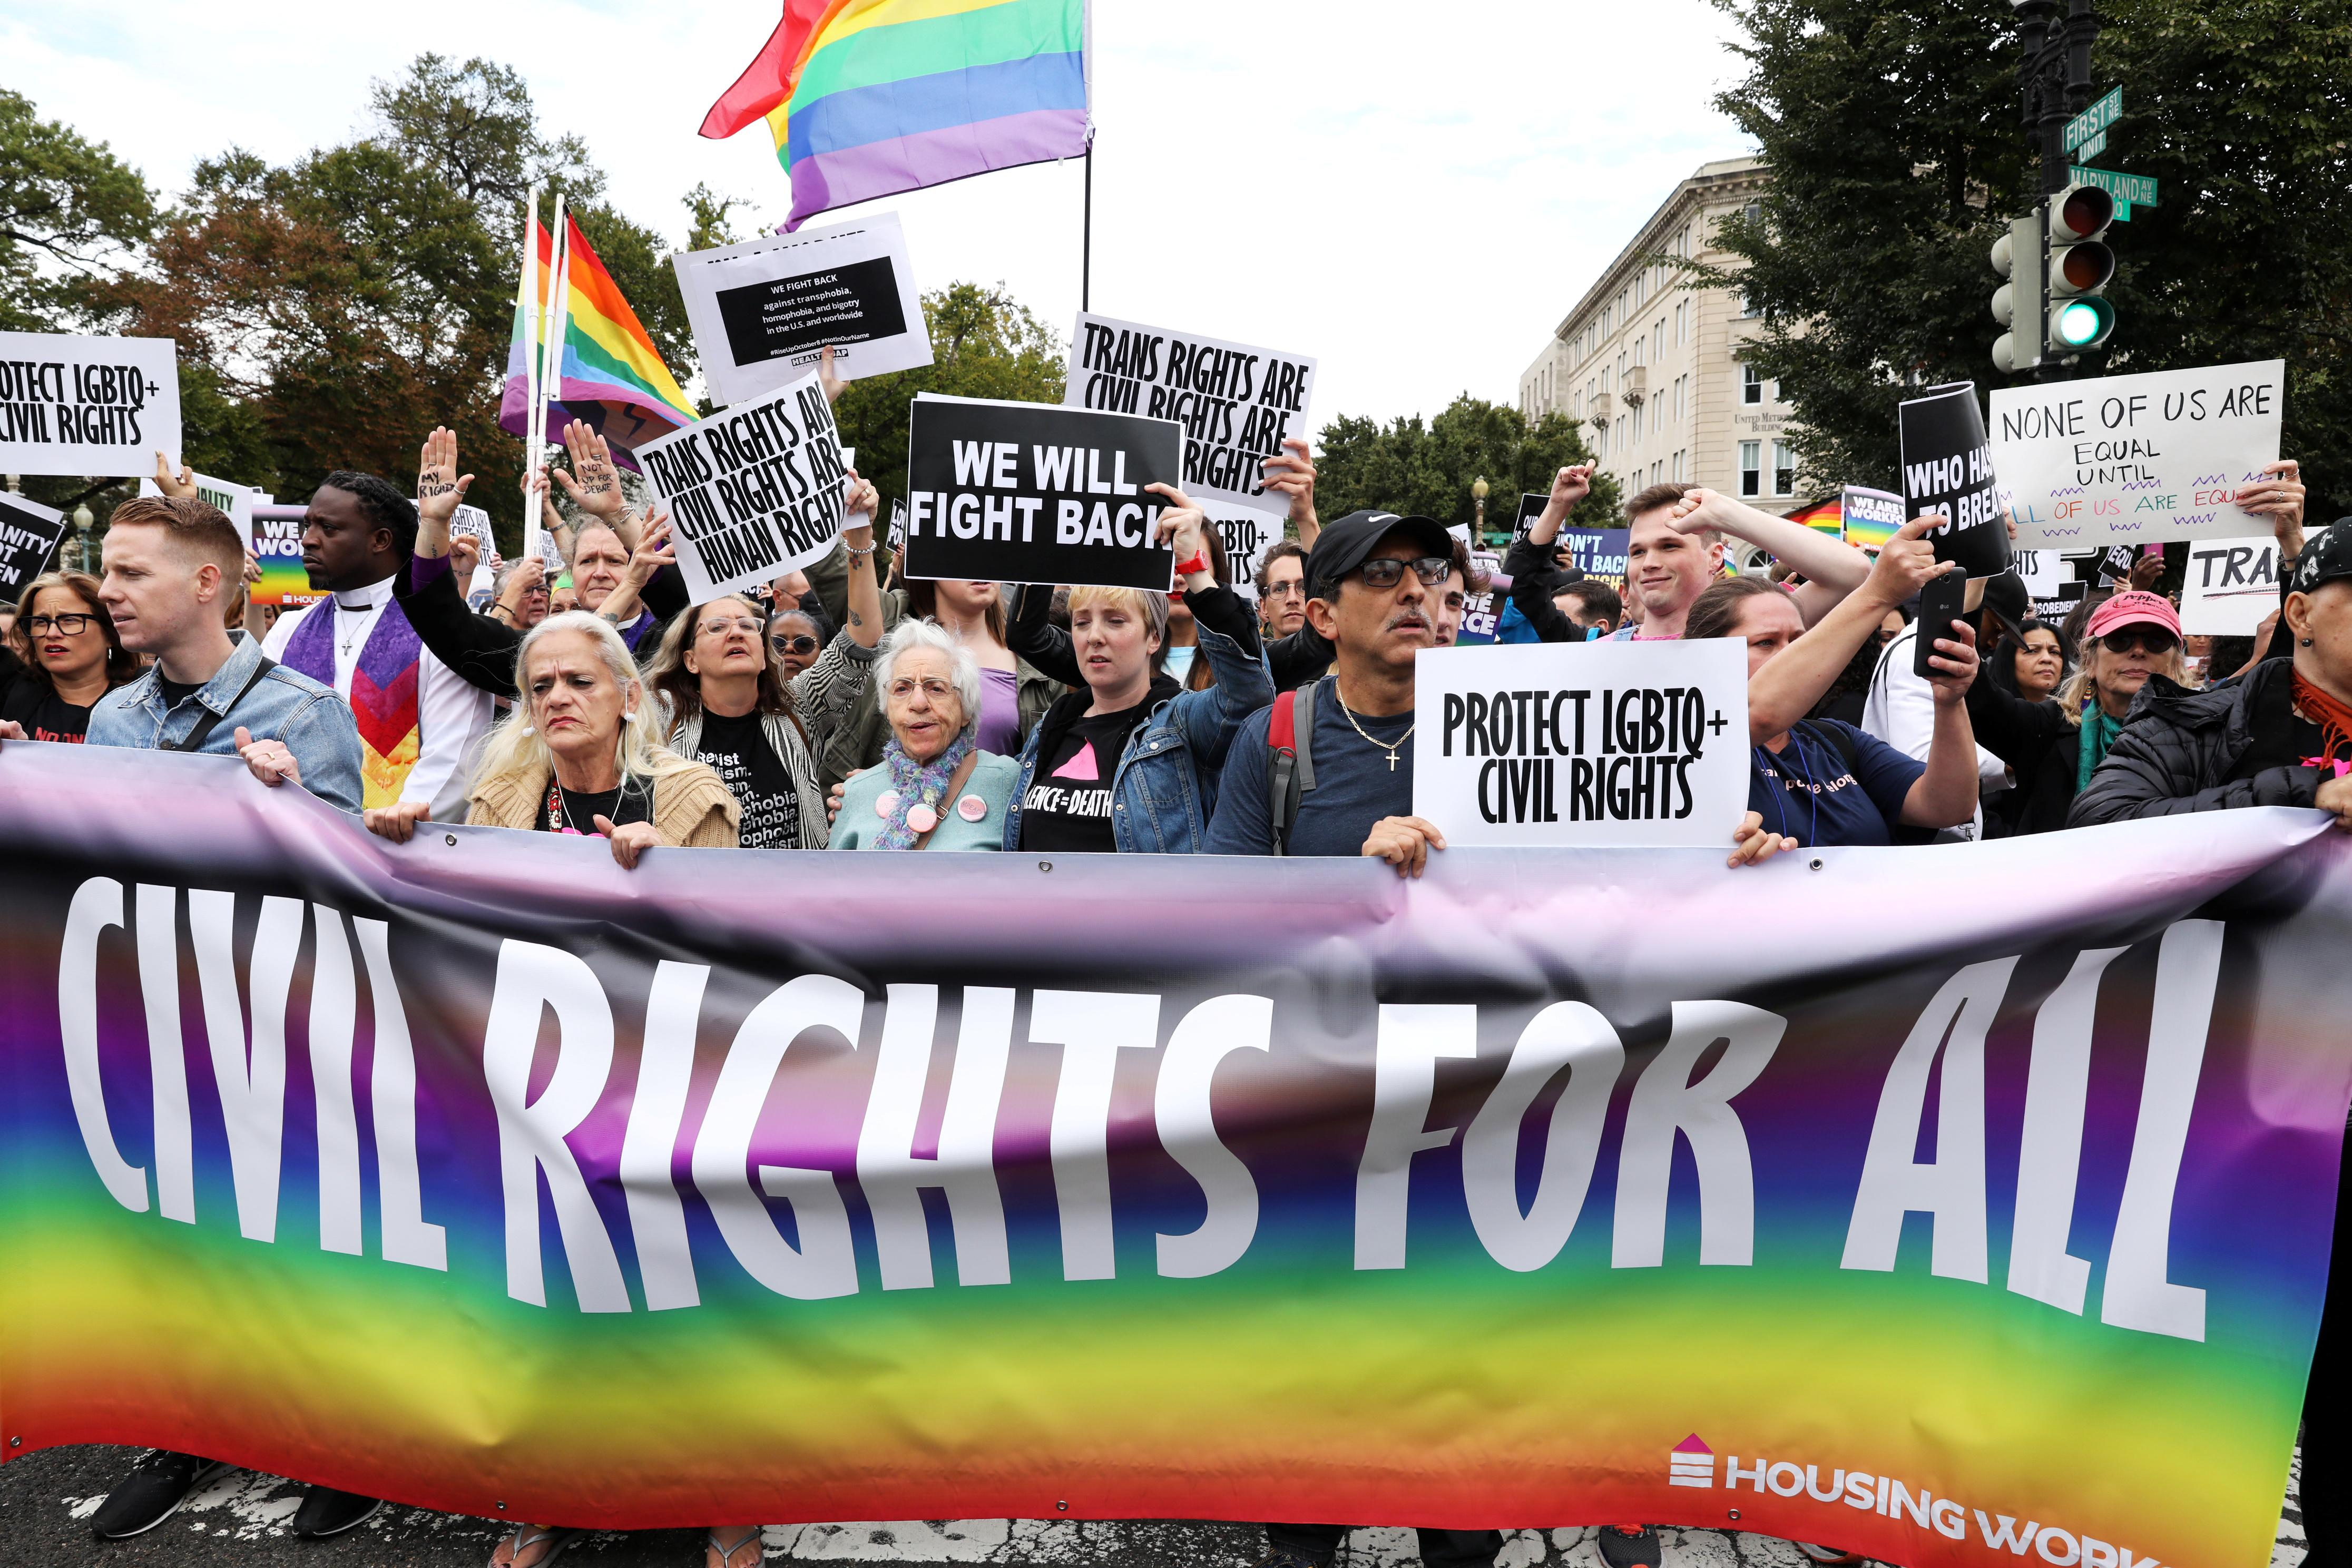 U.S. Supreme Court divided on LGBT employment protection; Gorsuch...